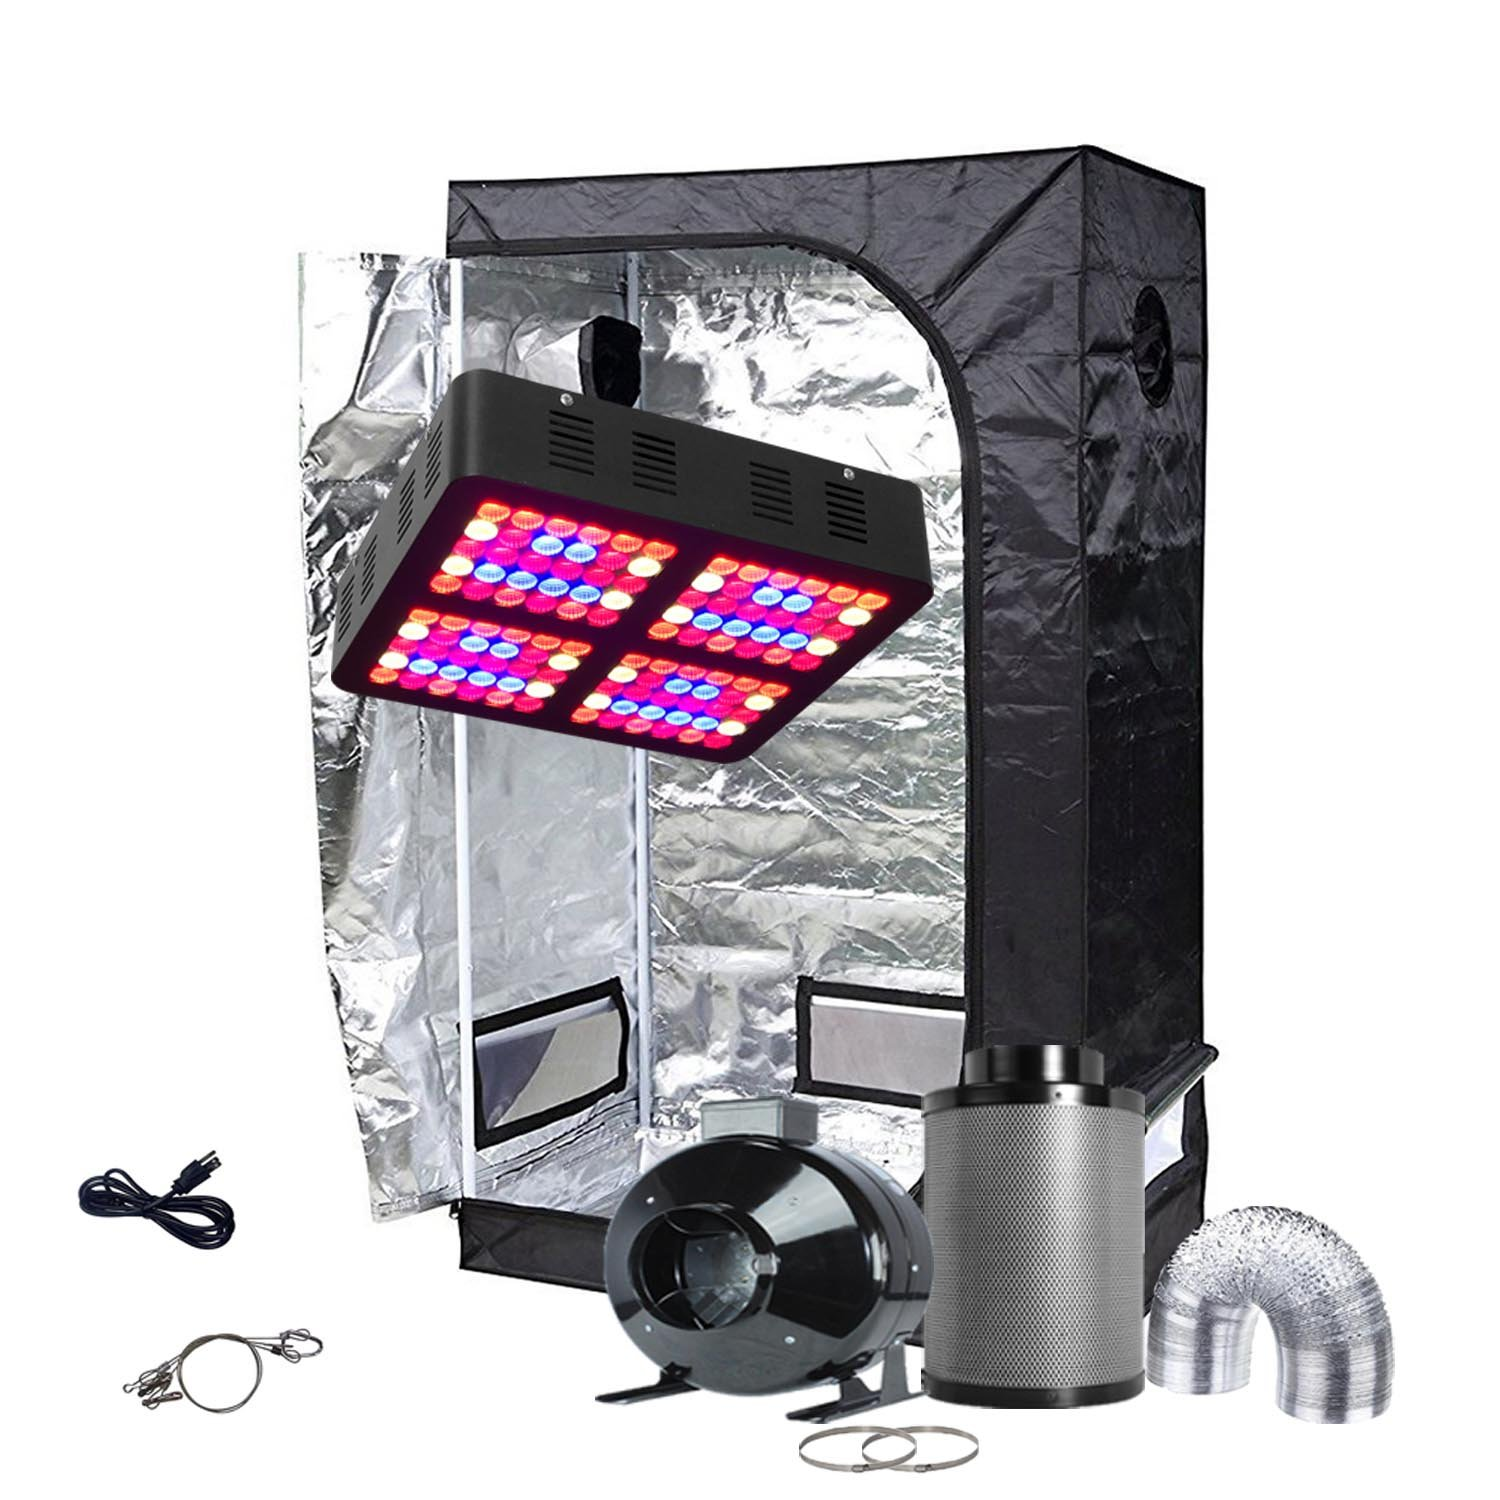 Oppolite LED Grow Tent Kit Complete Package LED 600W Grow Light Kit +4'' Fan Filter Ventilation Kit +36''X20''X63'' Grow Tent Setup Hydroponics Indoor Plants Growing System (LED600W+36''X20''X63''+4'')